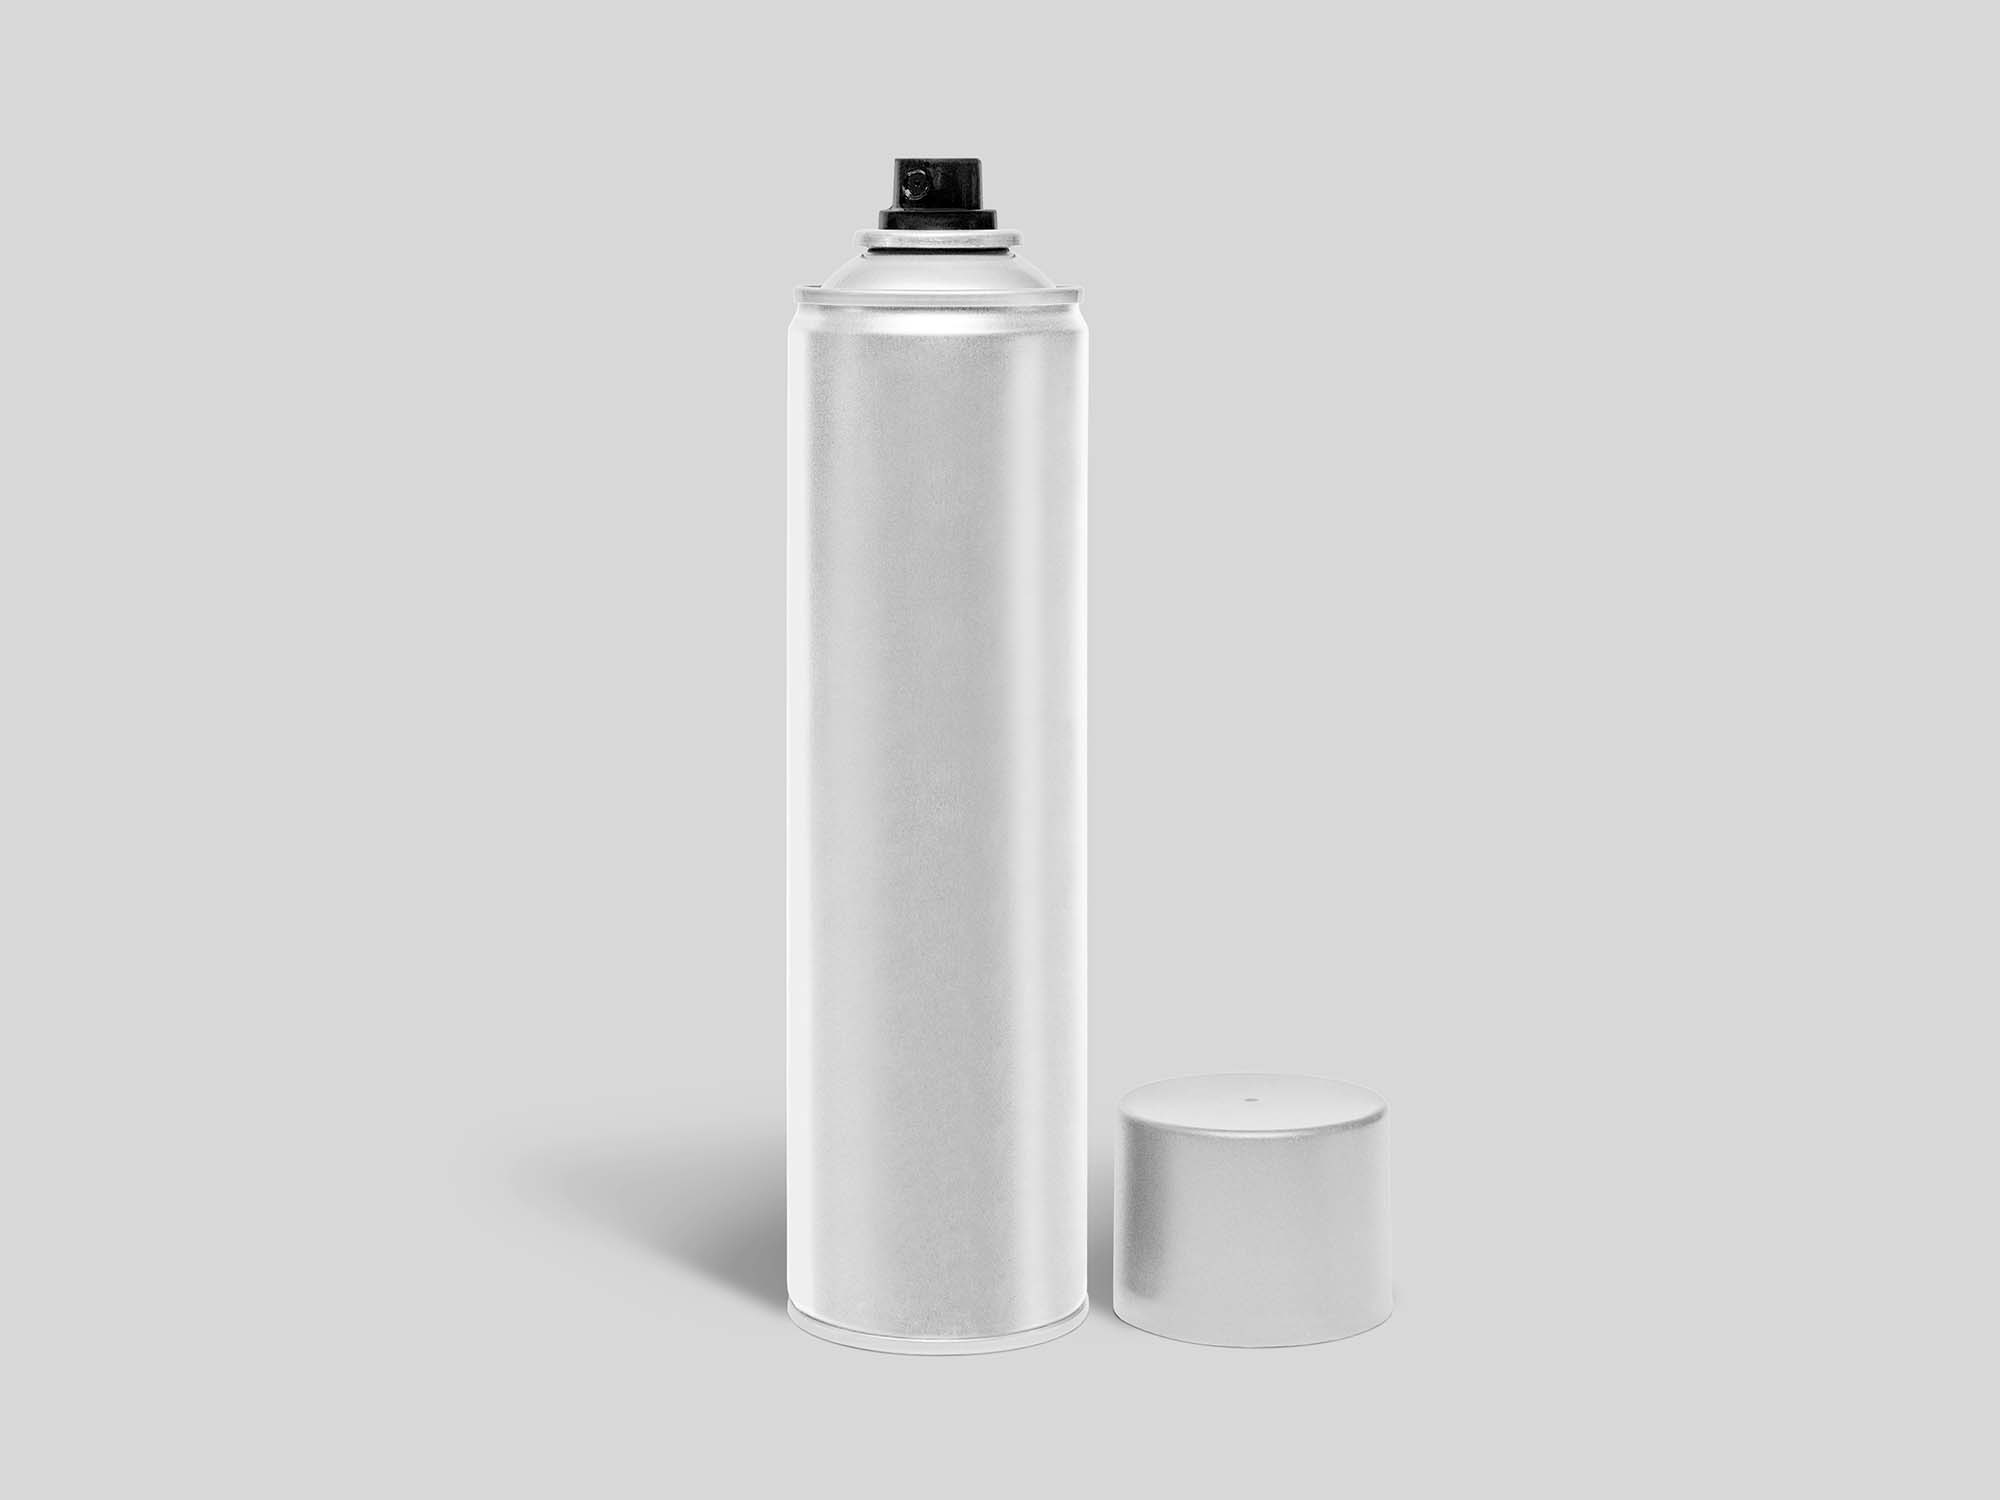 Aerosol Spray Can Mockup 2